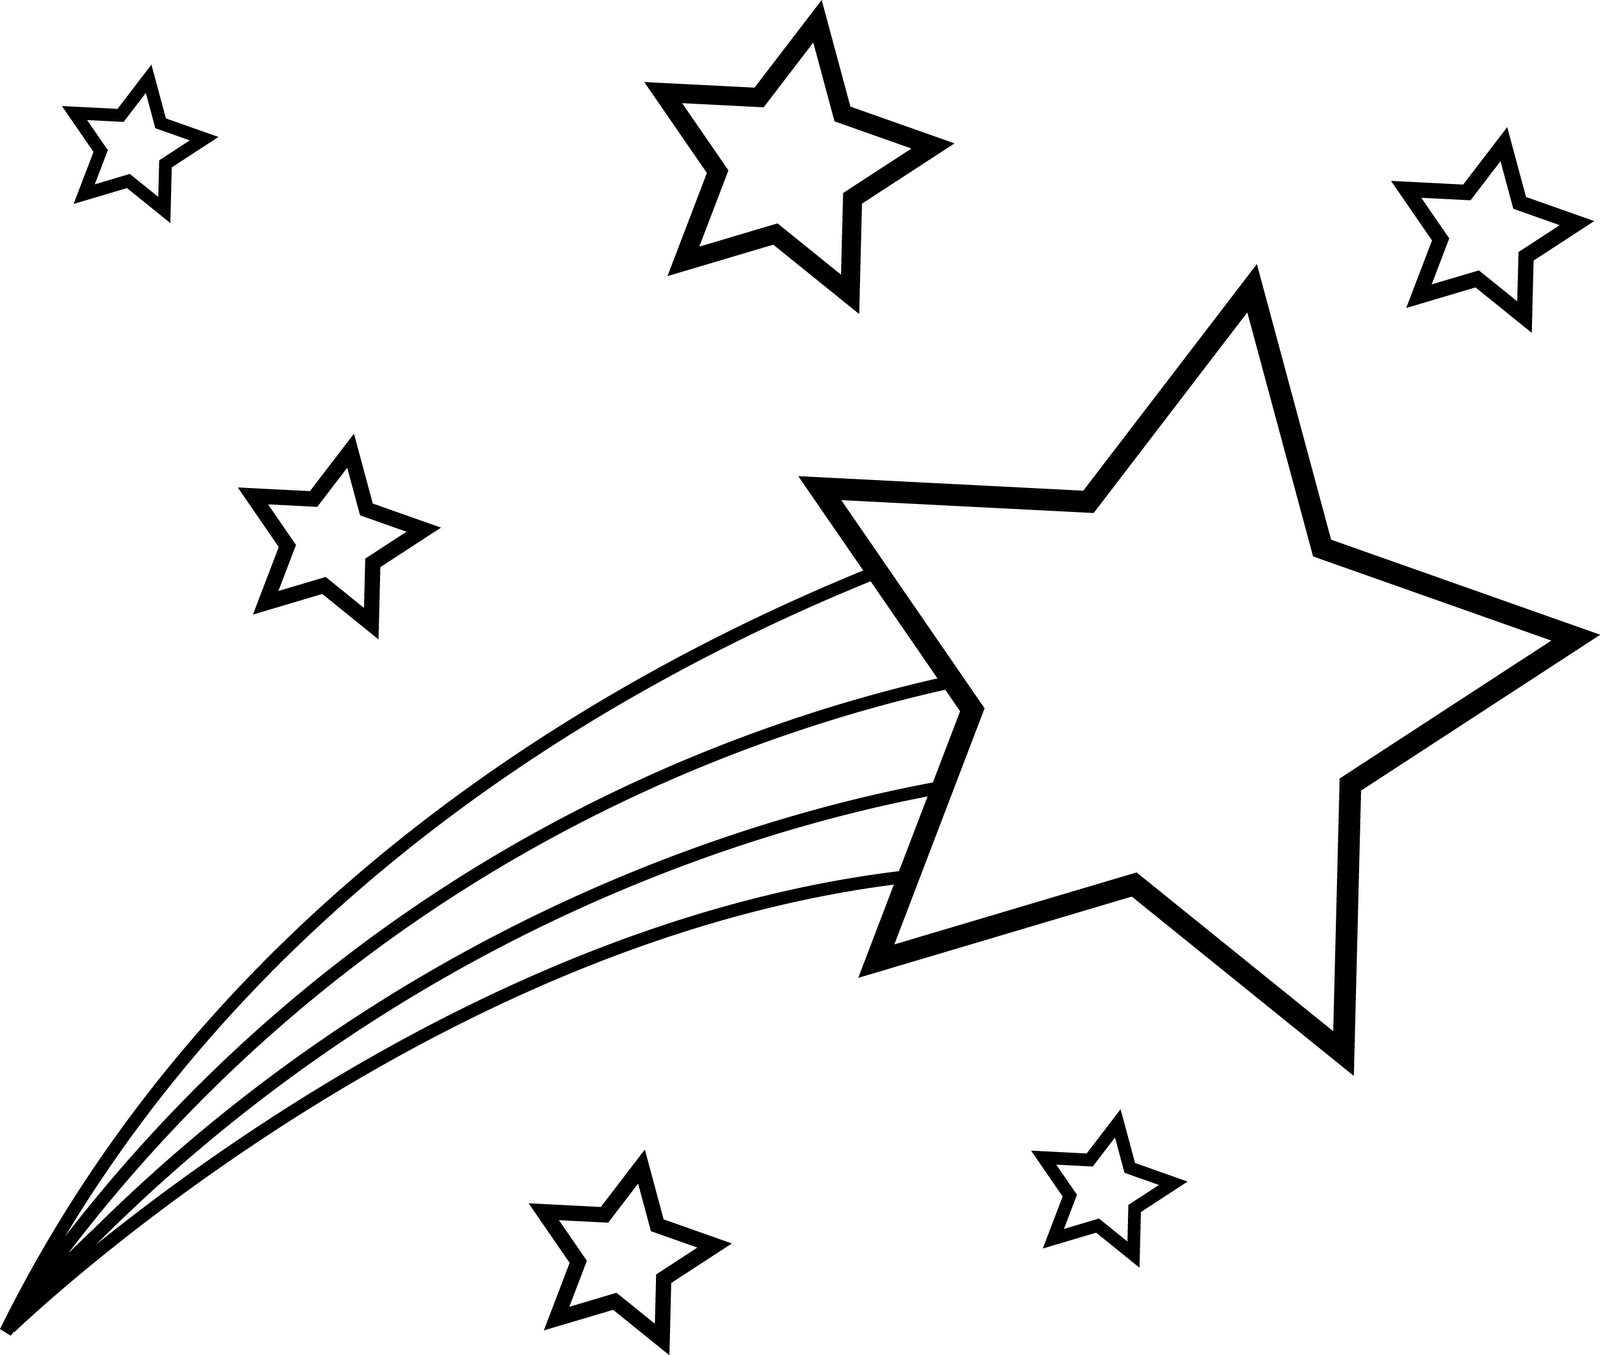 Shooting Star Clipart Black And White